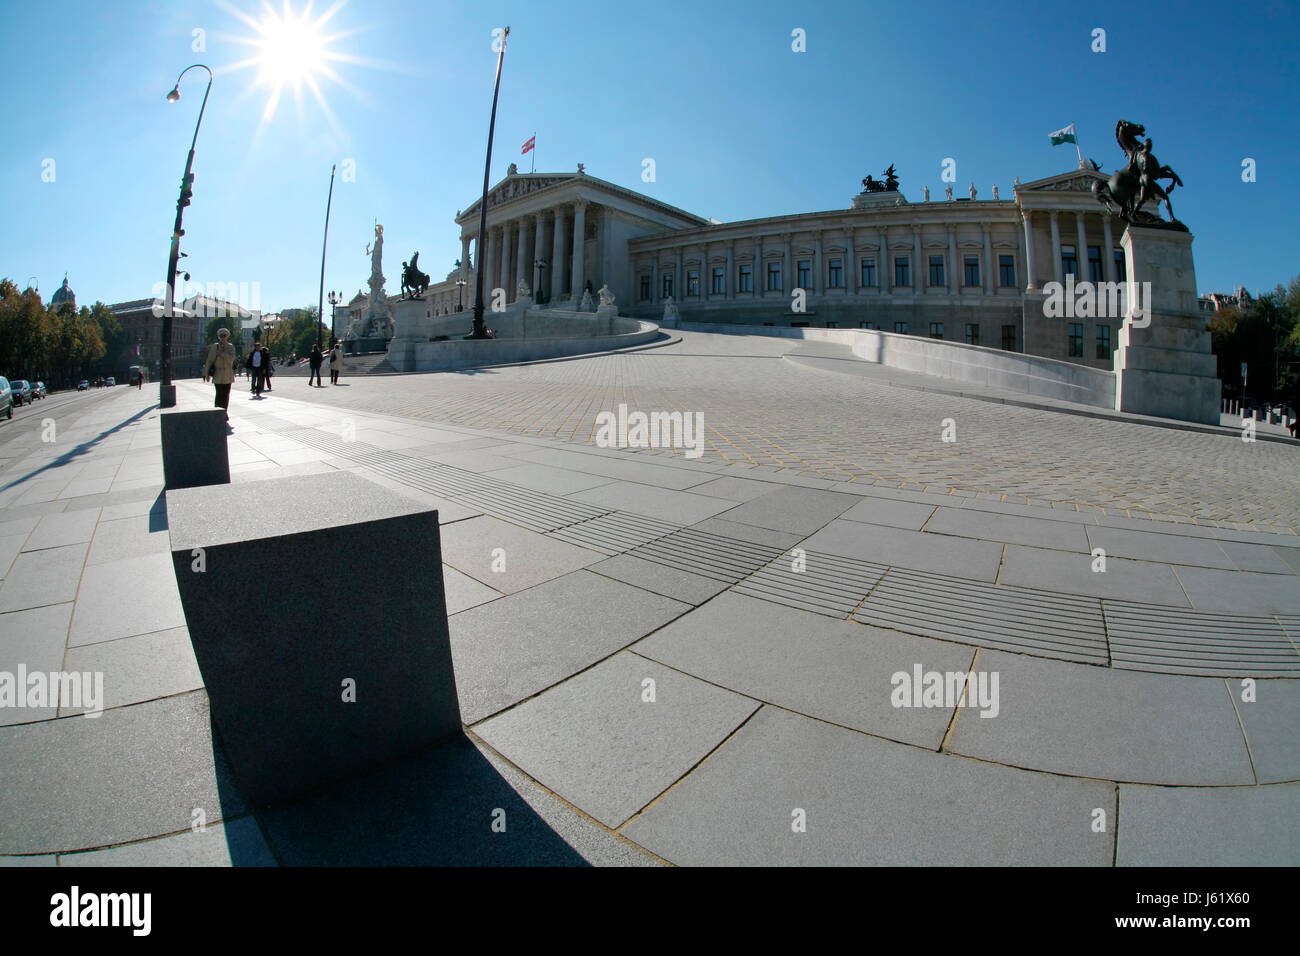 vienna parliament politics government athena historical vienna counter-light - Stock Image